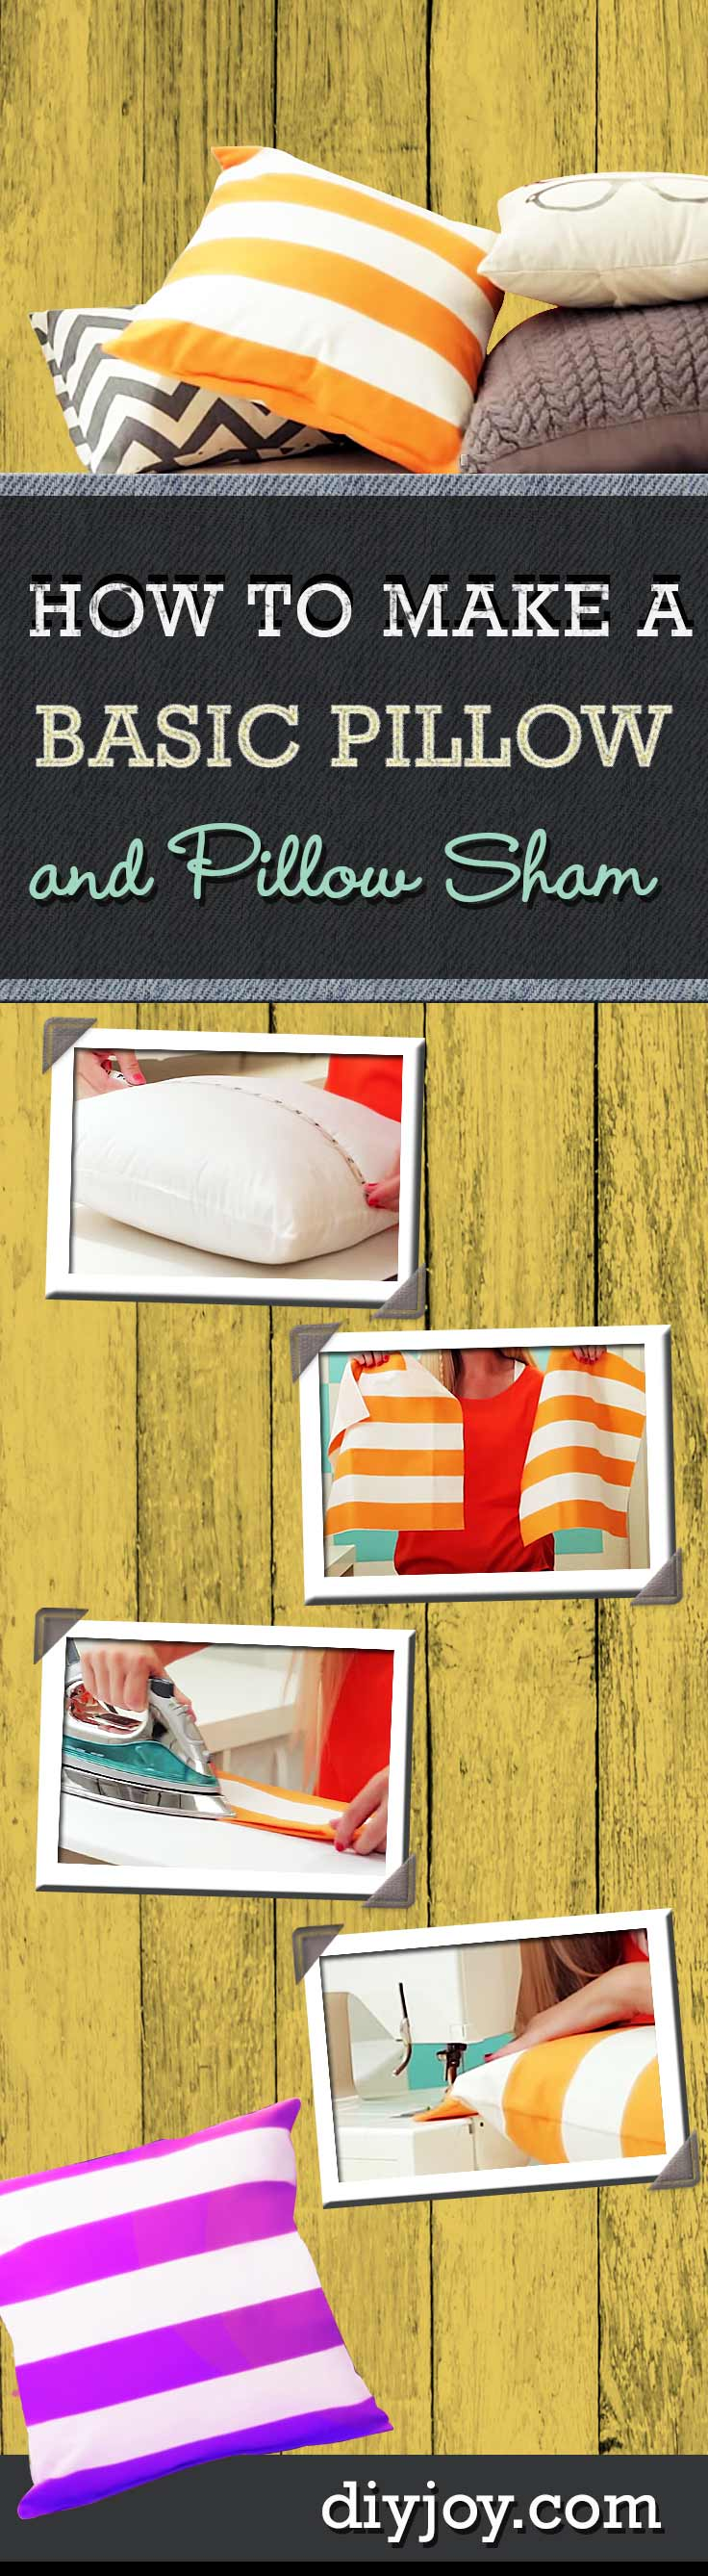 How to Make a Pillow Basic Pillow and Pillow Sham - DIY Joy